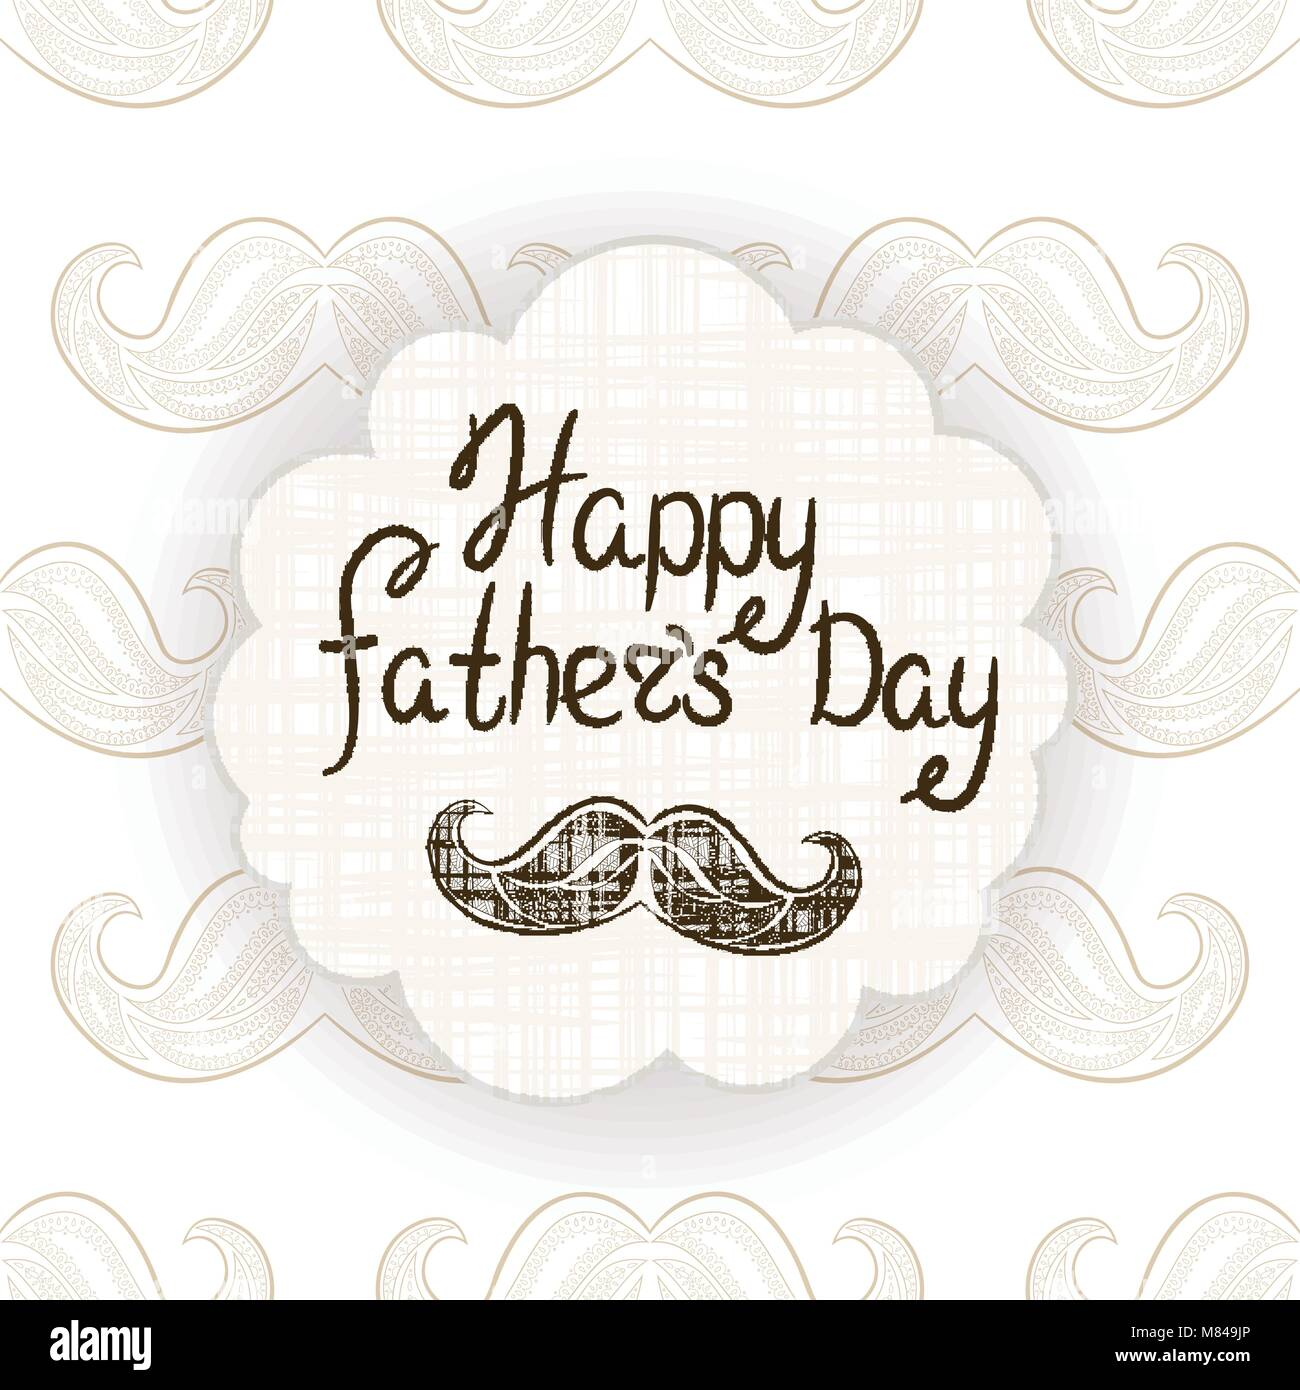 Greeting card for fathers day vector postcard with zen tangle greeting card for fathers day vector postcard with zen tangle mustache typography greetings for dad m4hsunfo